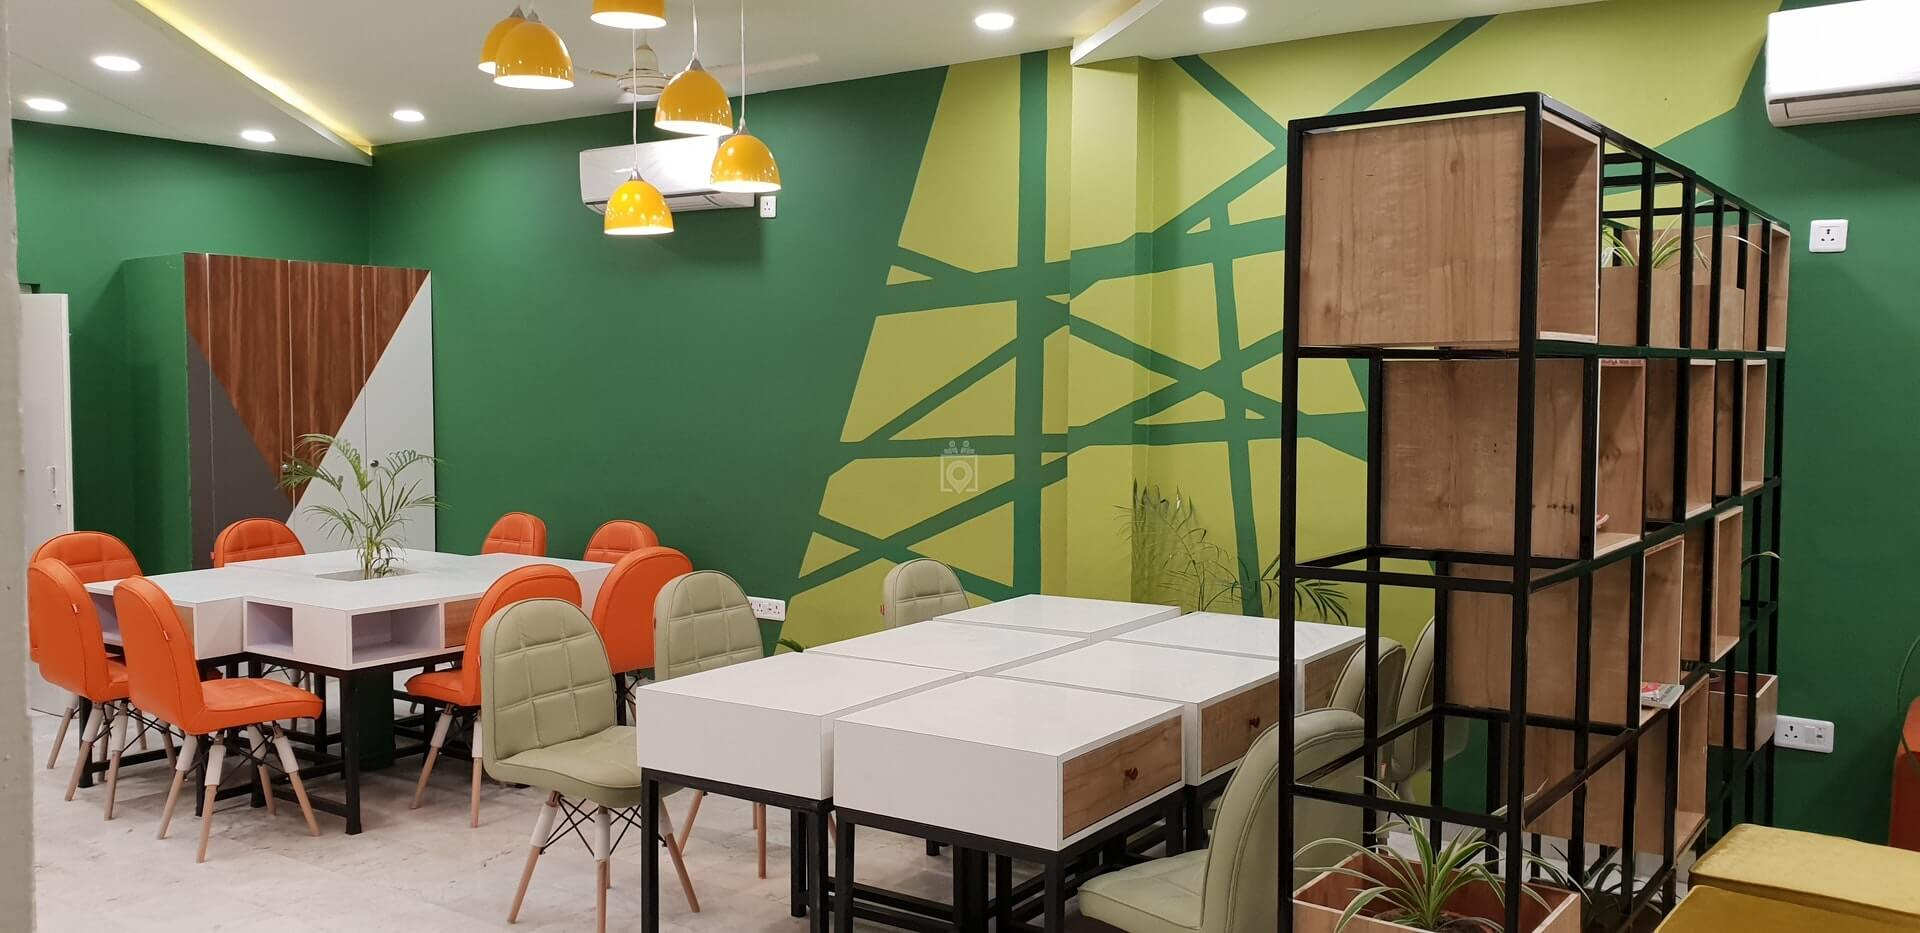 ECORK Coworking and Creative Spaces| Bookofficenow